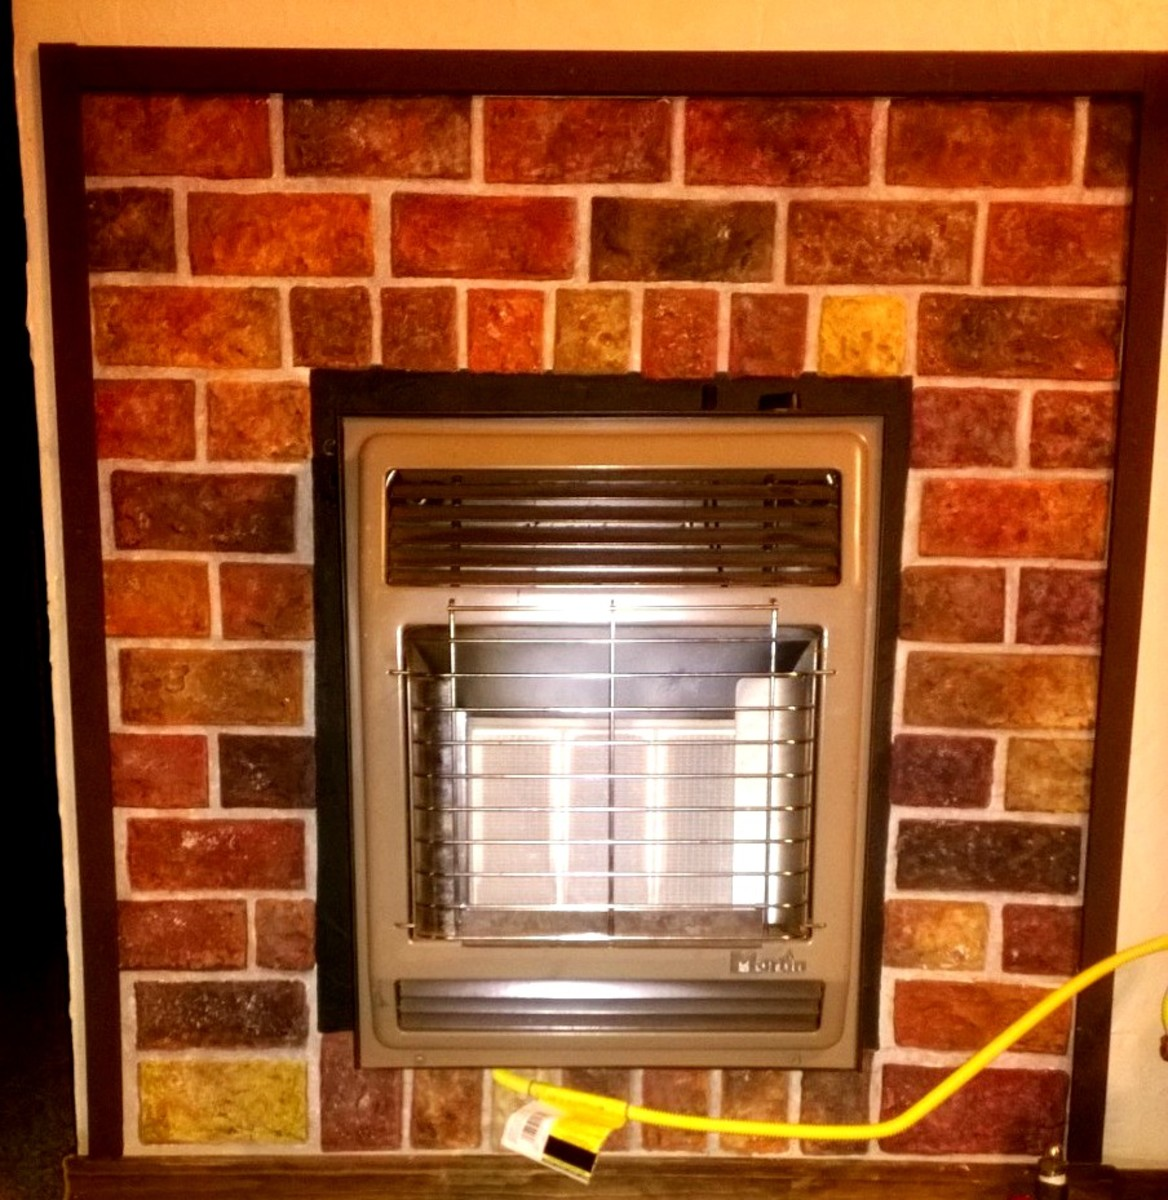 Learn how to build your own DIY faux brick freplace